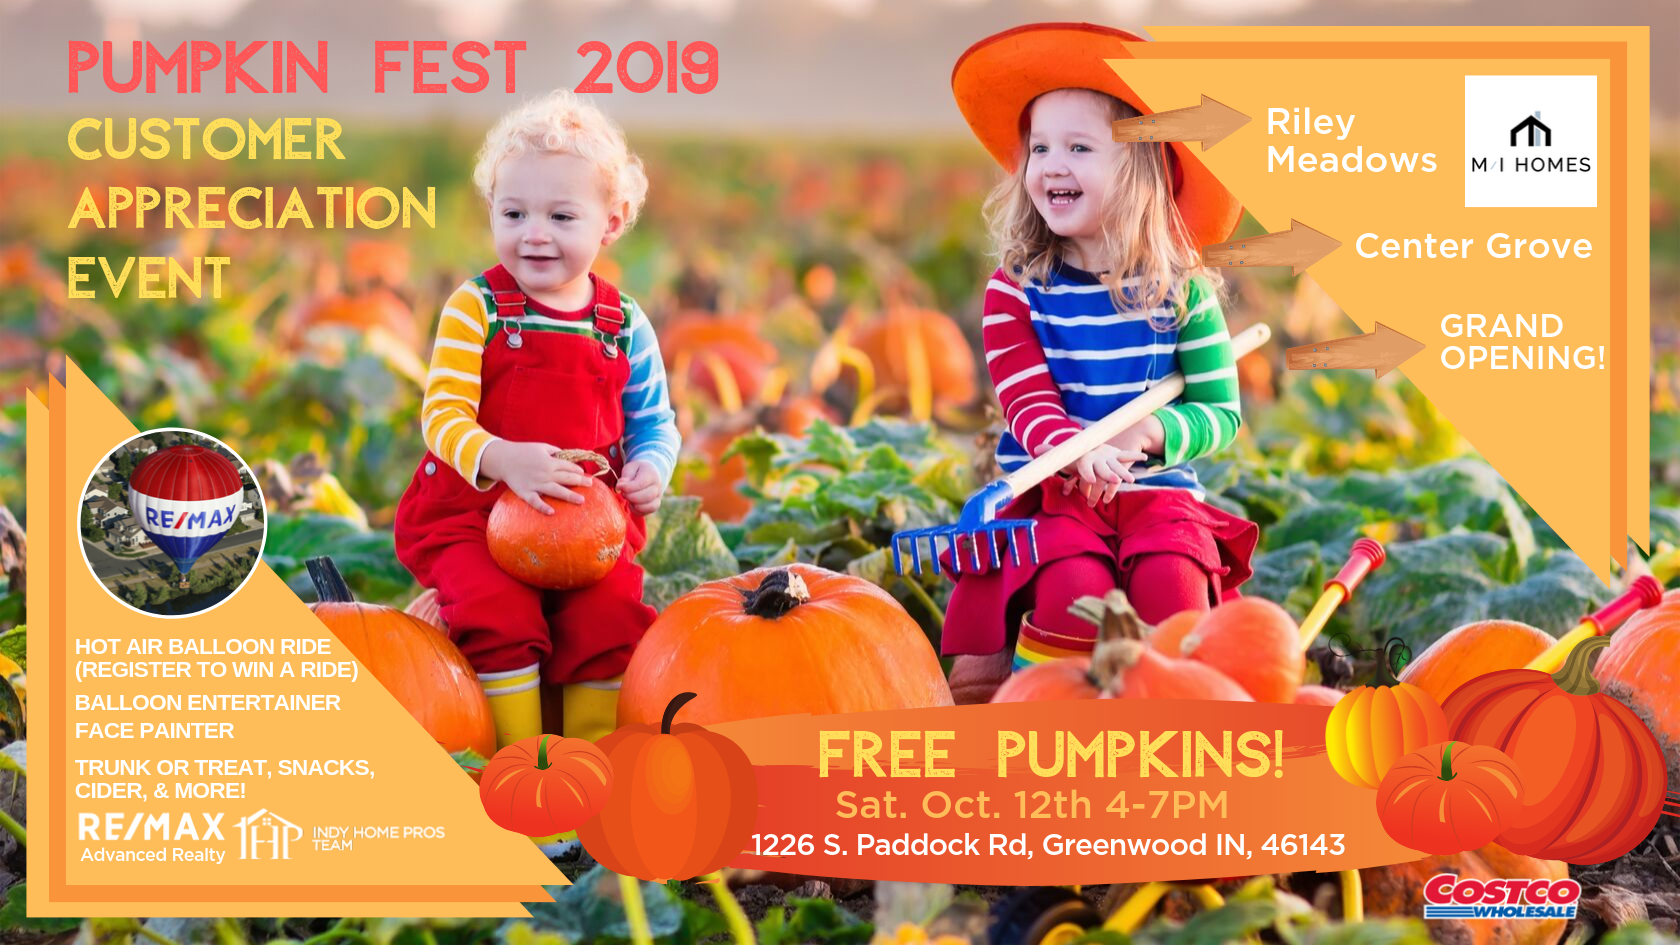 Pumpkin Fest 2019 Indy Home Pros Team REMAX